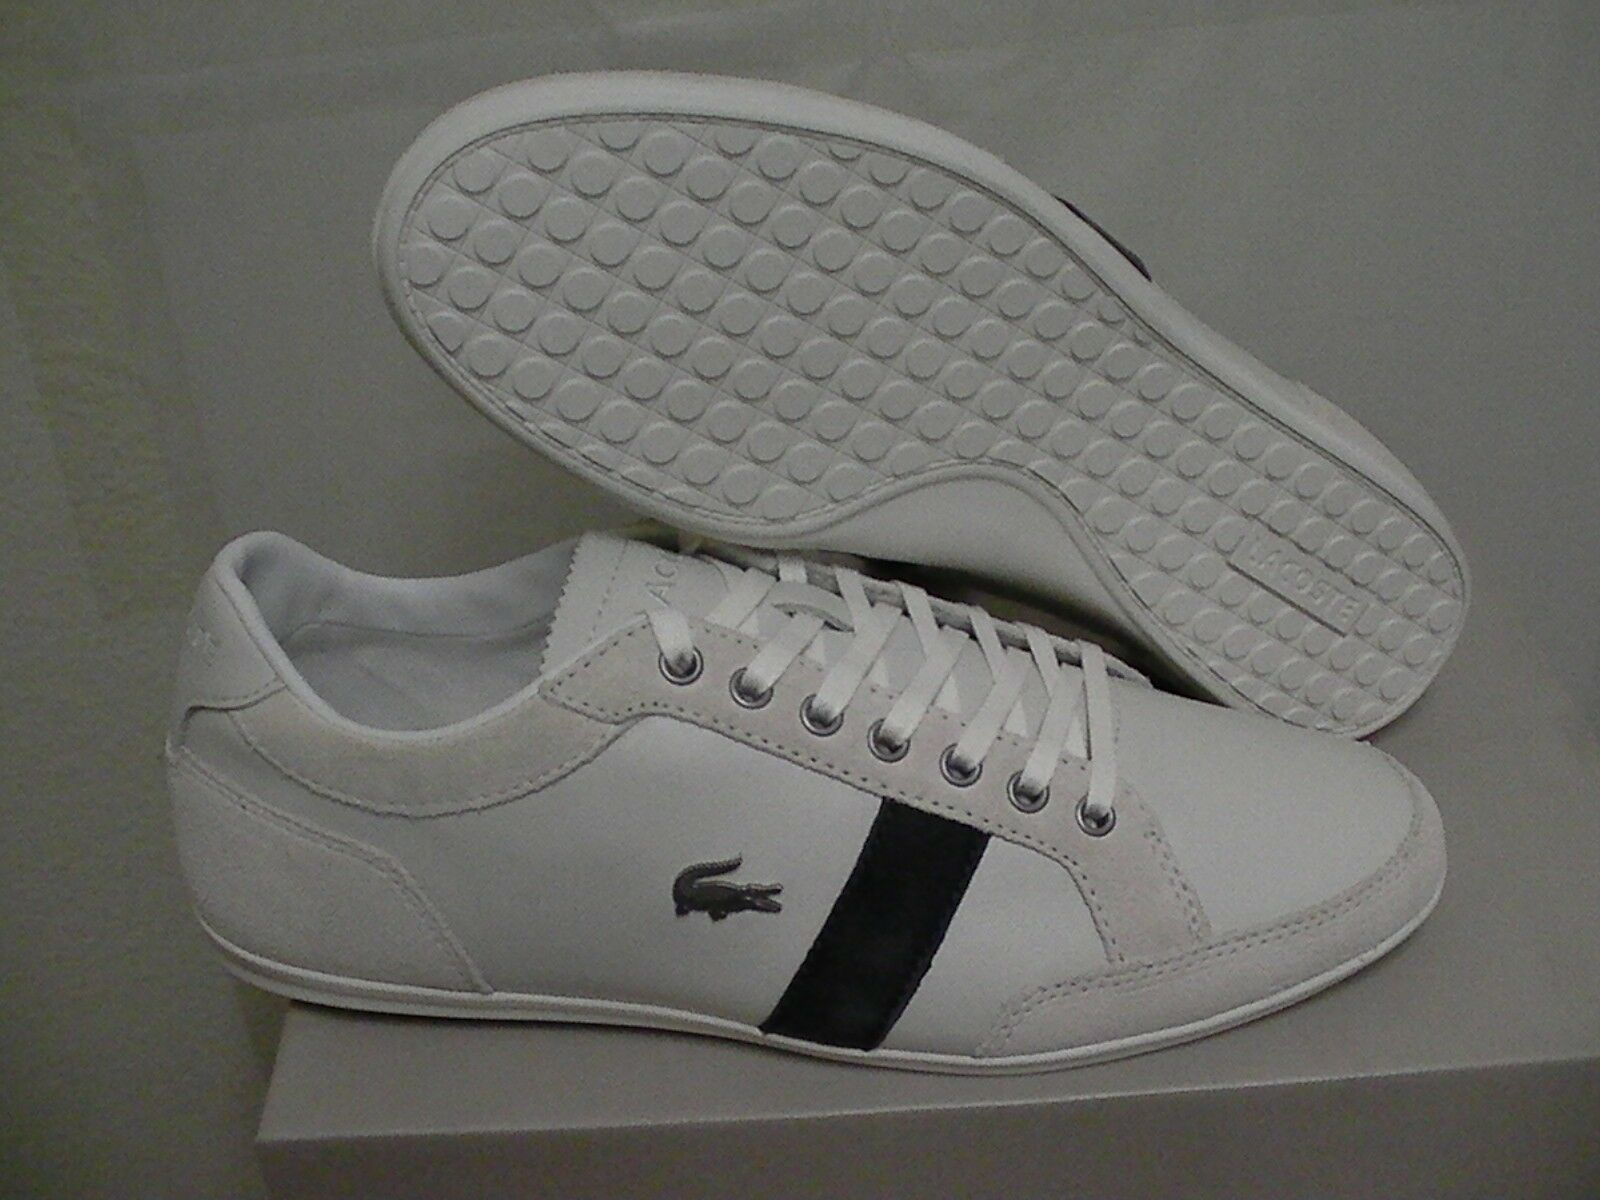 Lacostechaussuresalisos 14 spm offBlancleather/suede Taille 10 us